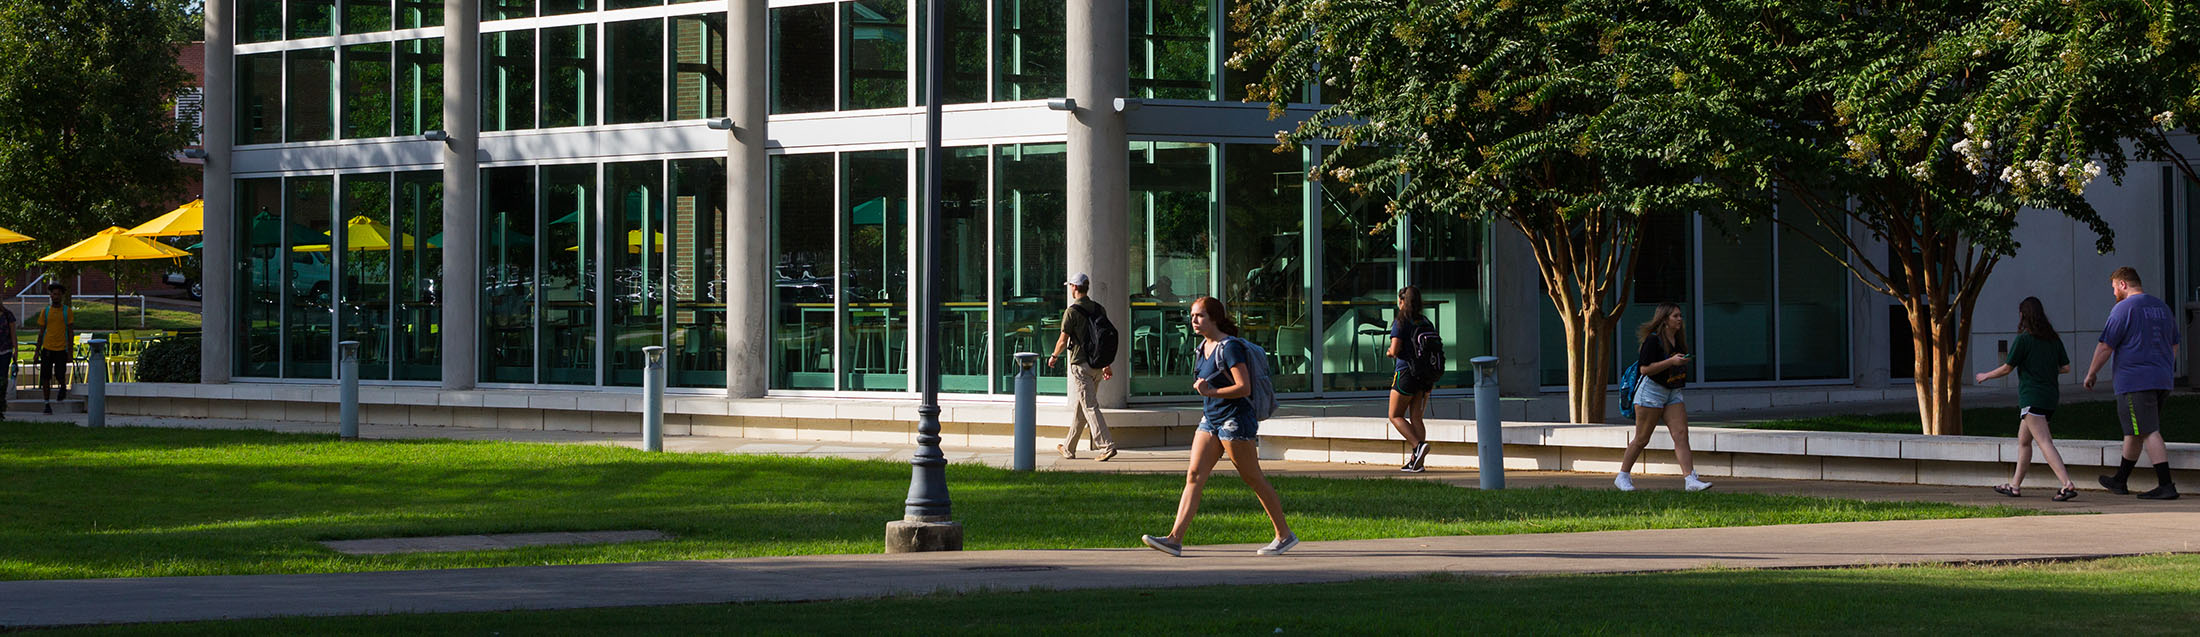 a student walking on campus in front of baswell techionery